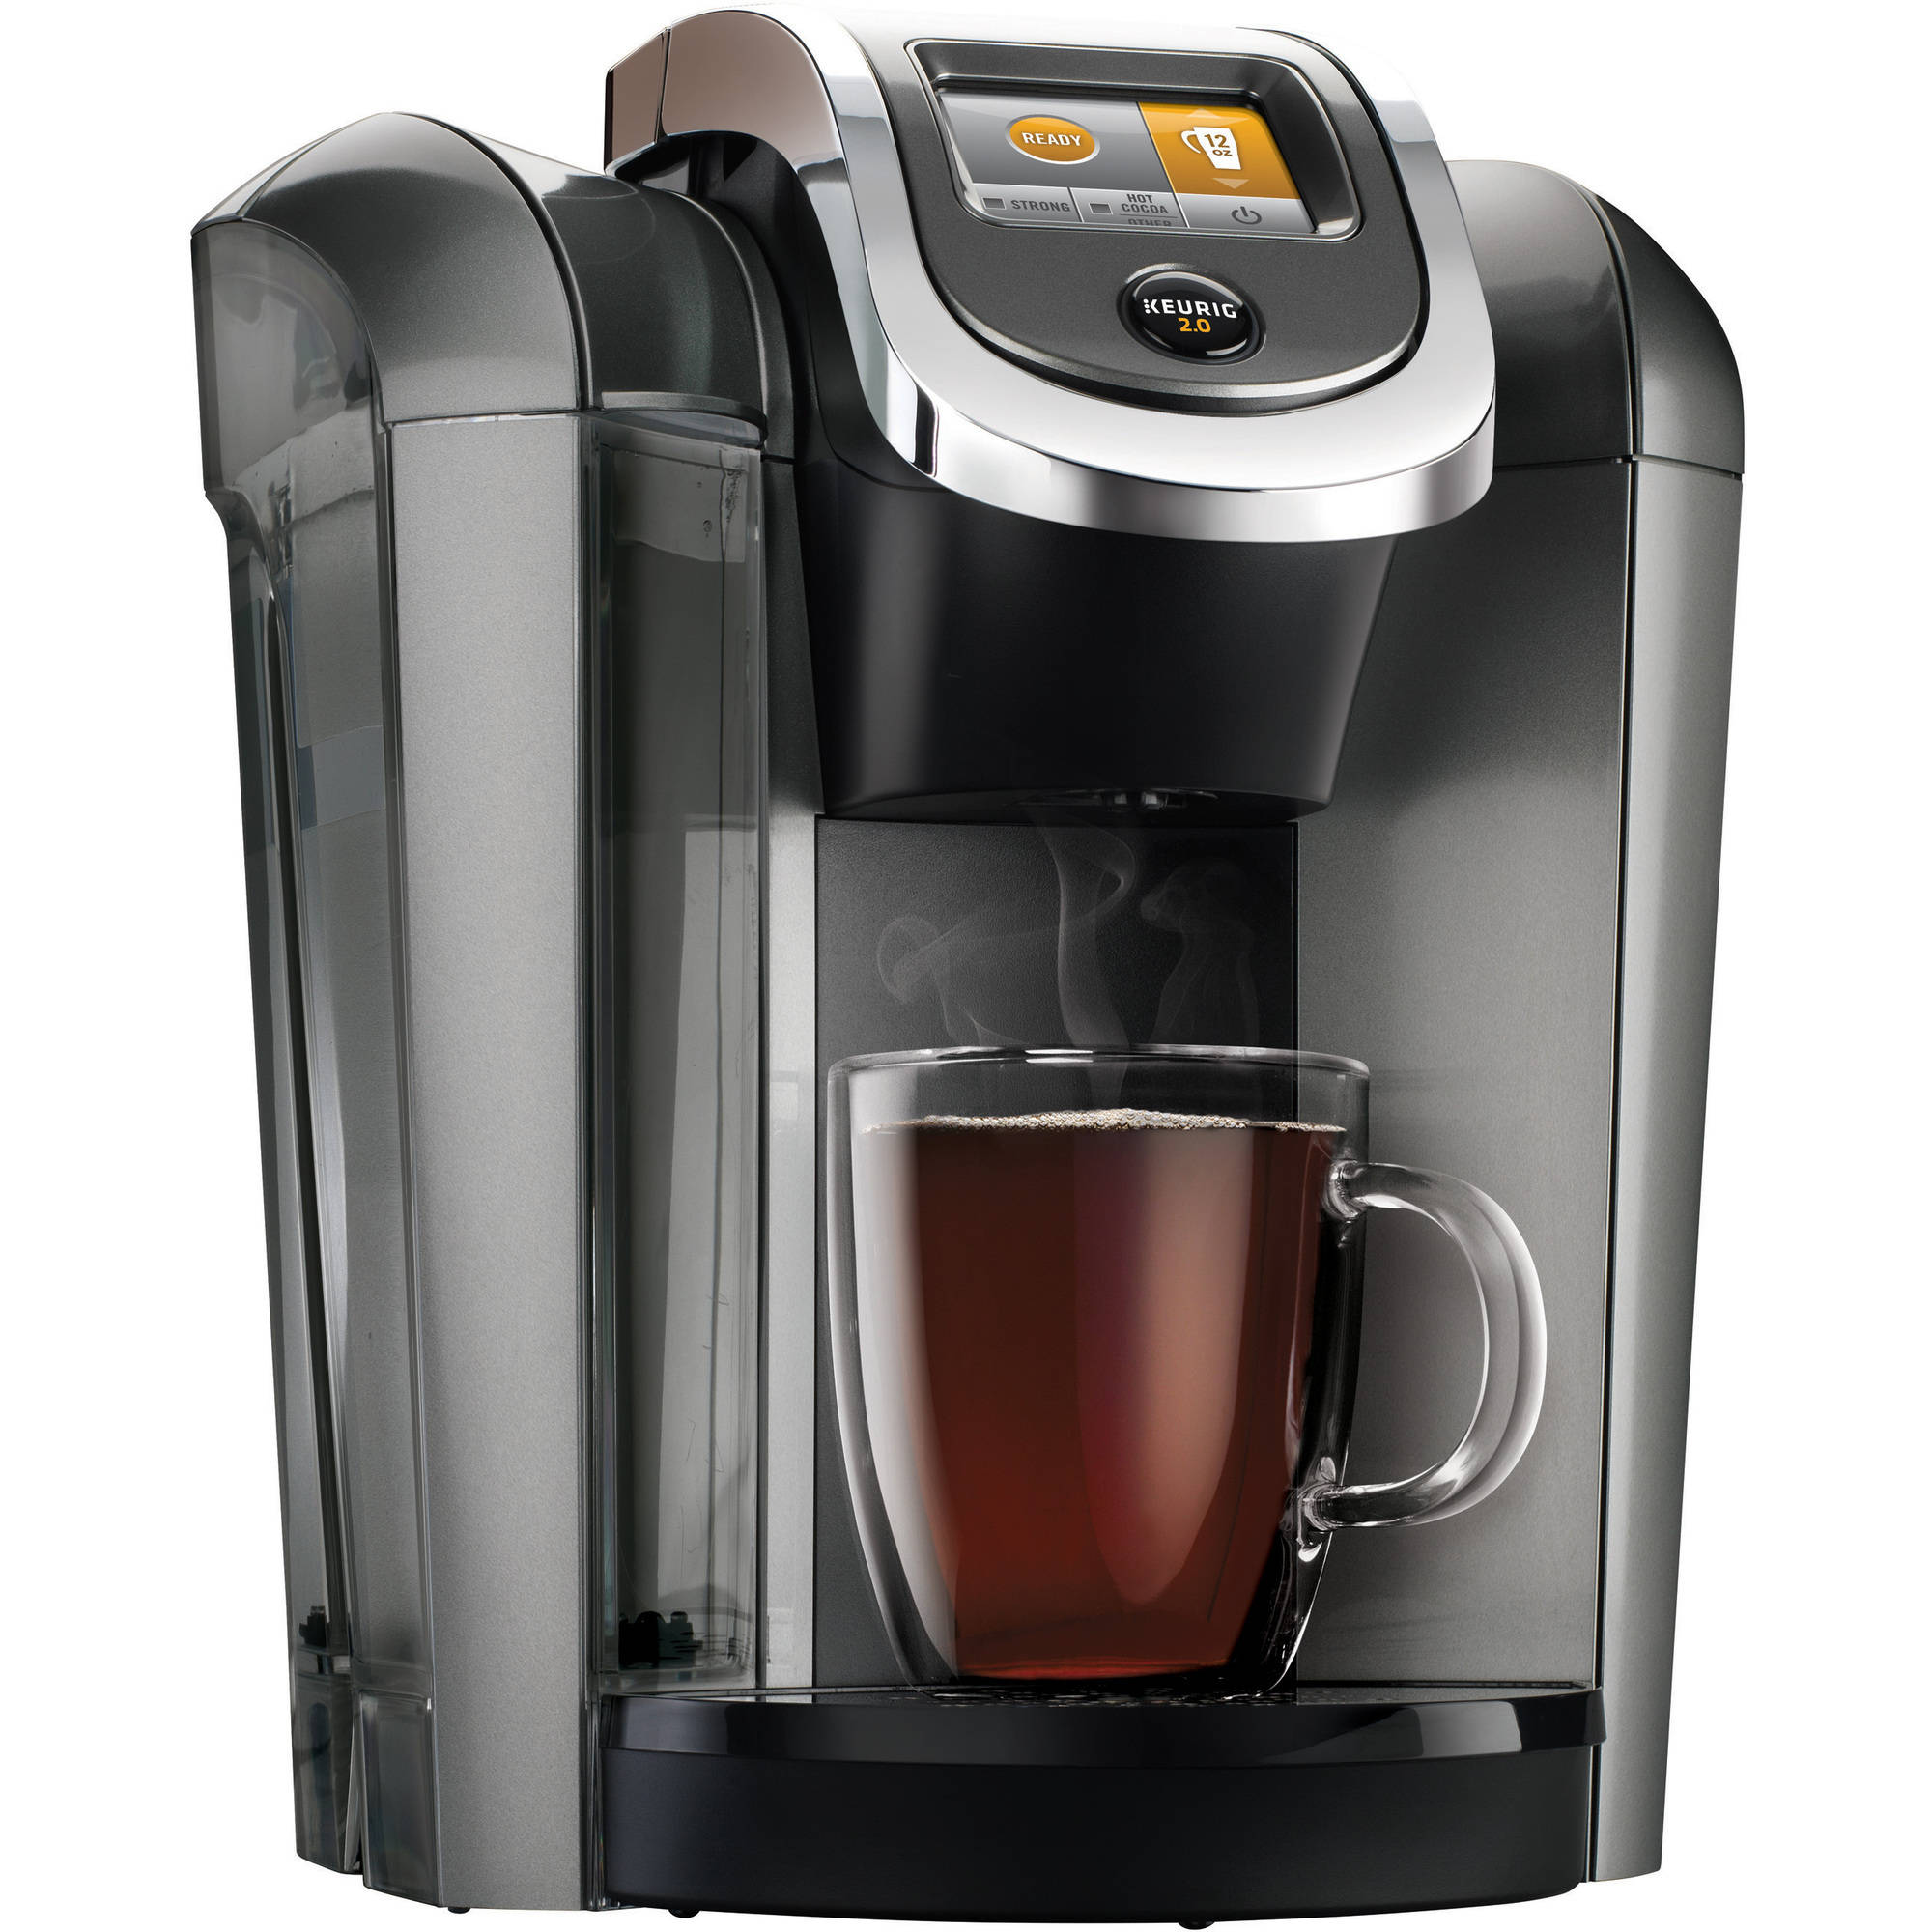 Keurig K525 Coffee Maker, Platinum